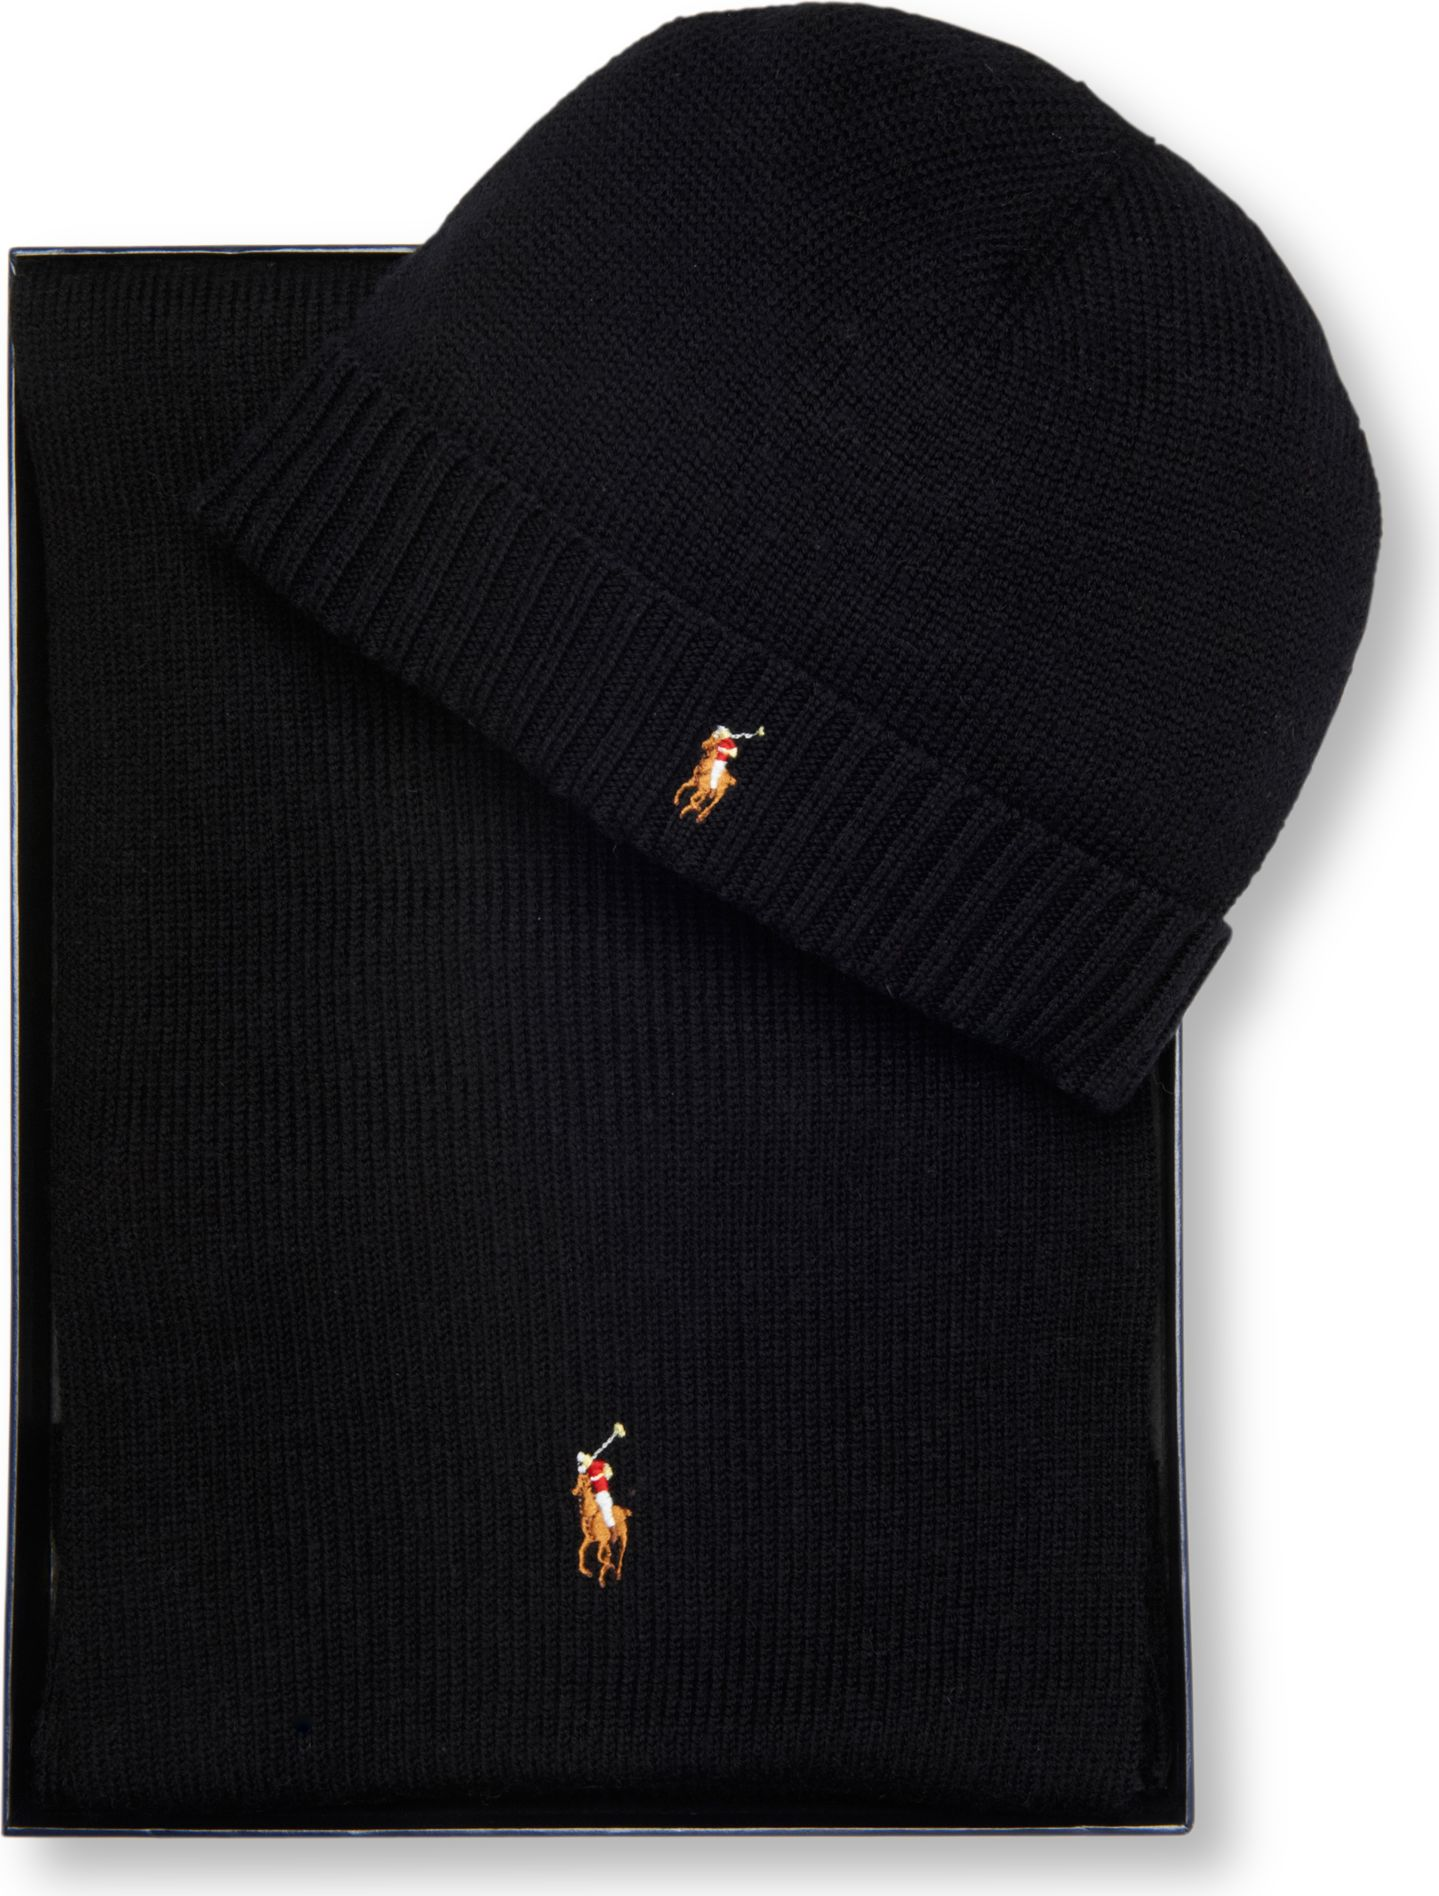 ralph lauren pony player beanie hat and scarf set in black